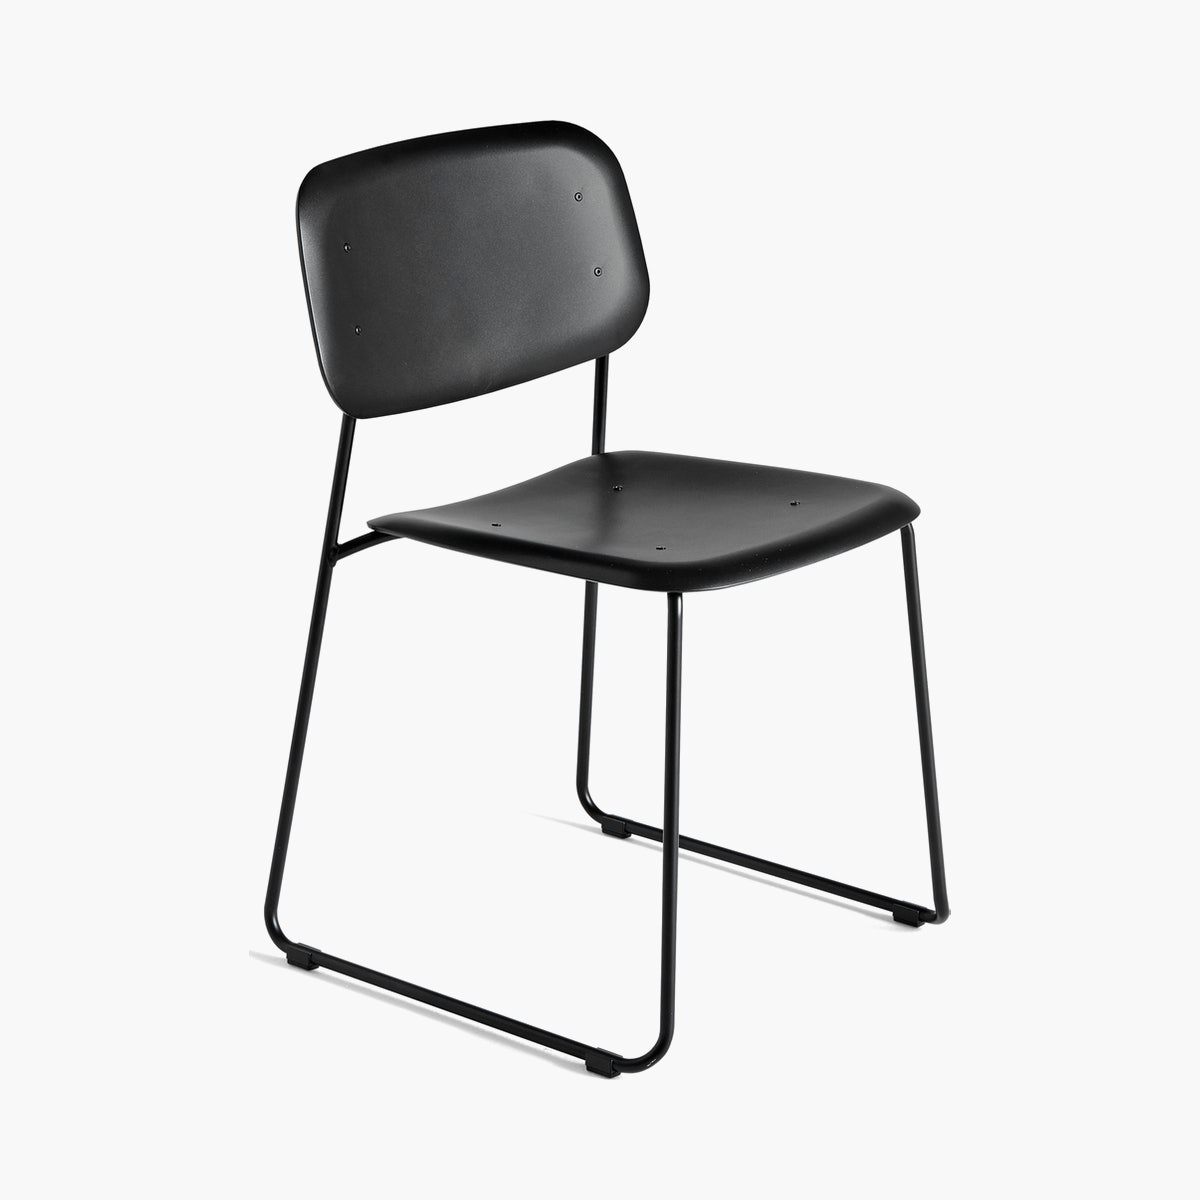 Soft Edge 10 Sled Chair